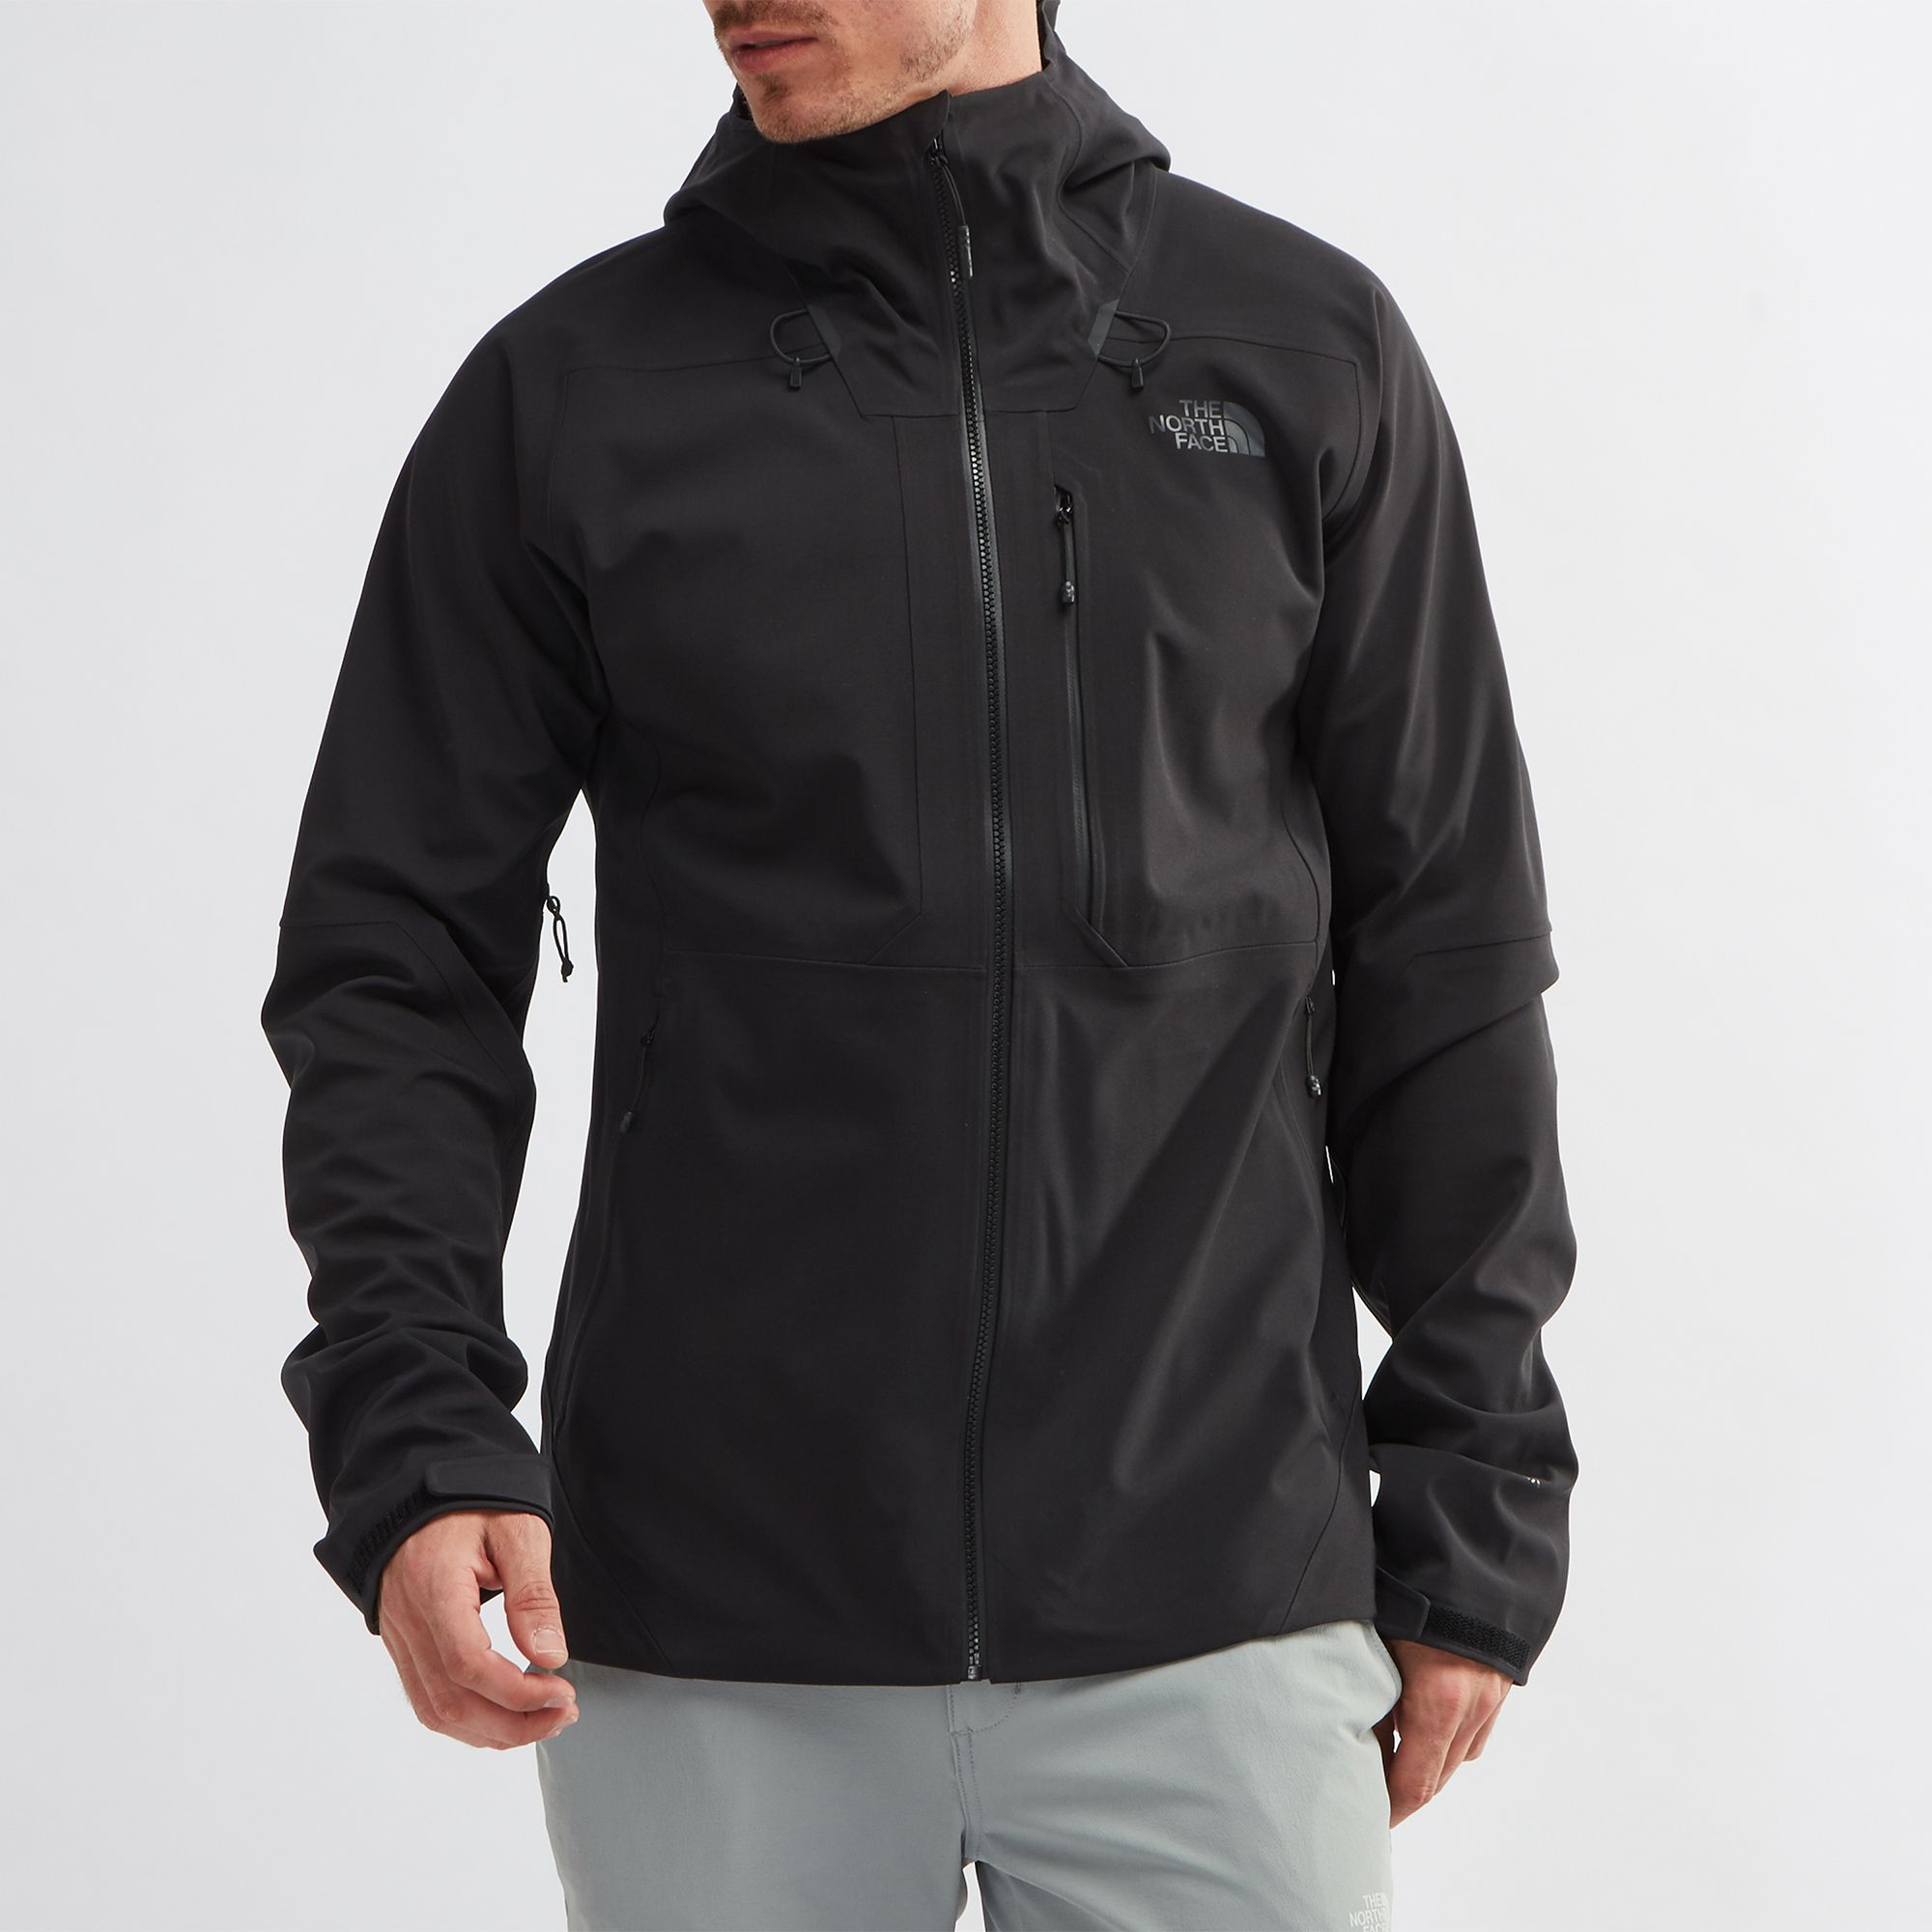 6cc27d01b The North Face Apex Flex GTX 2.0 Jacket